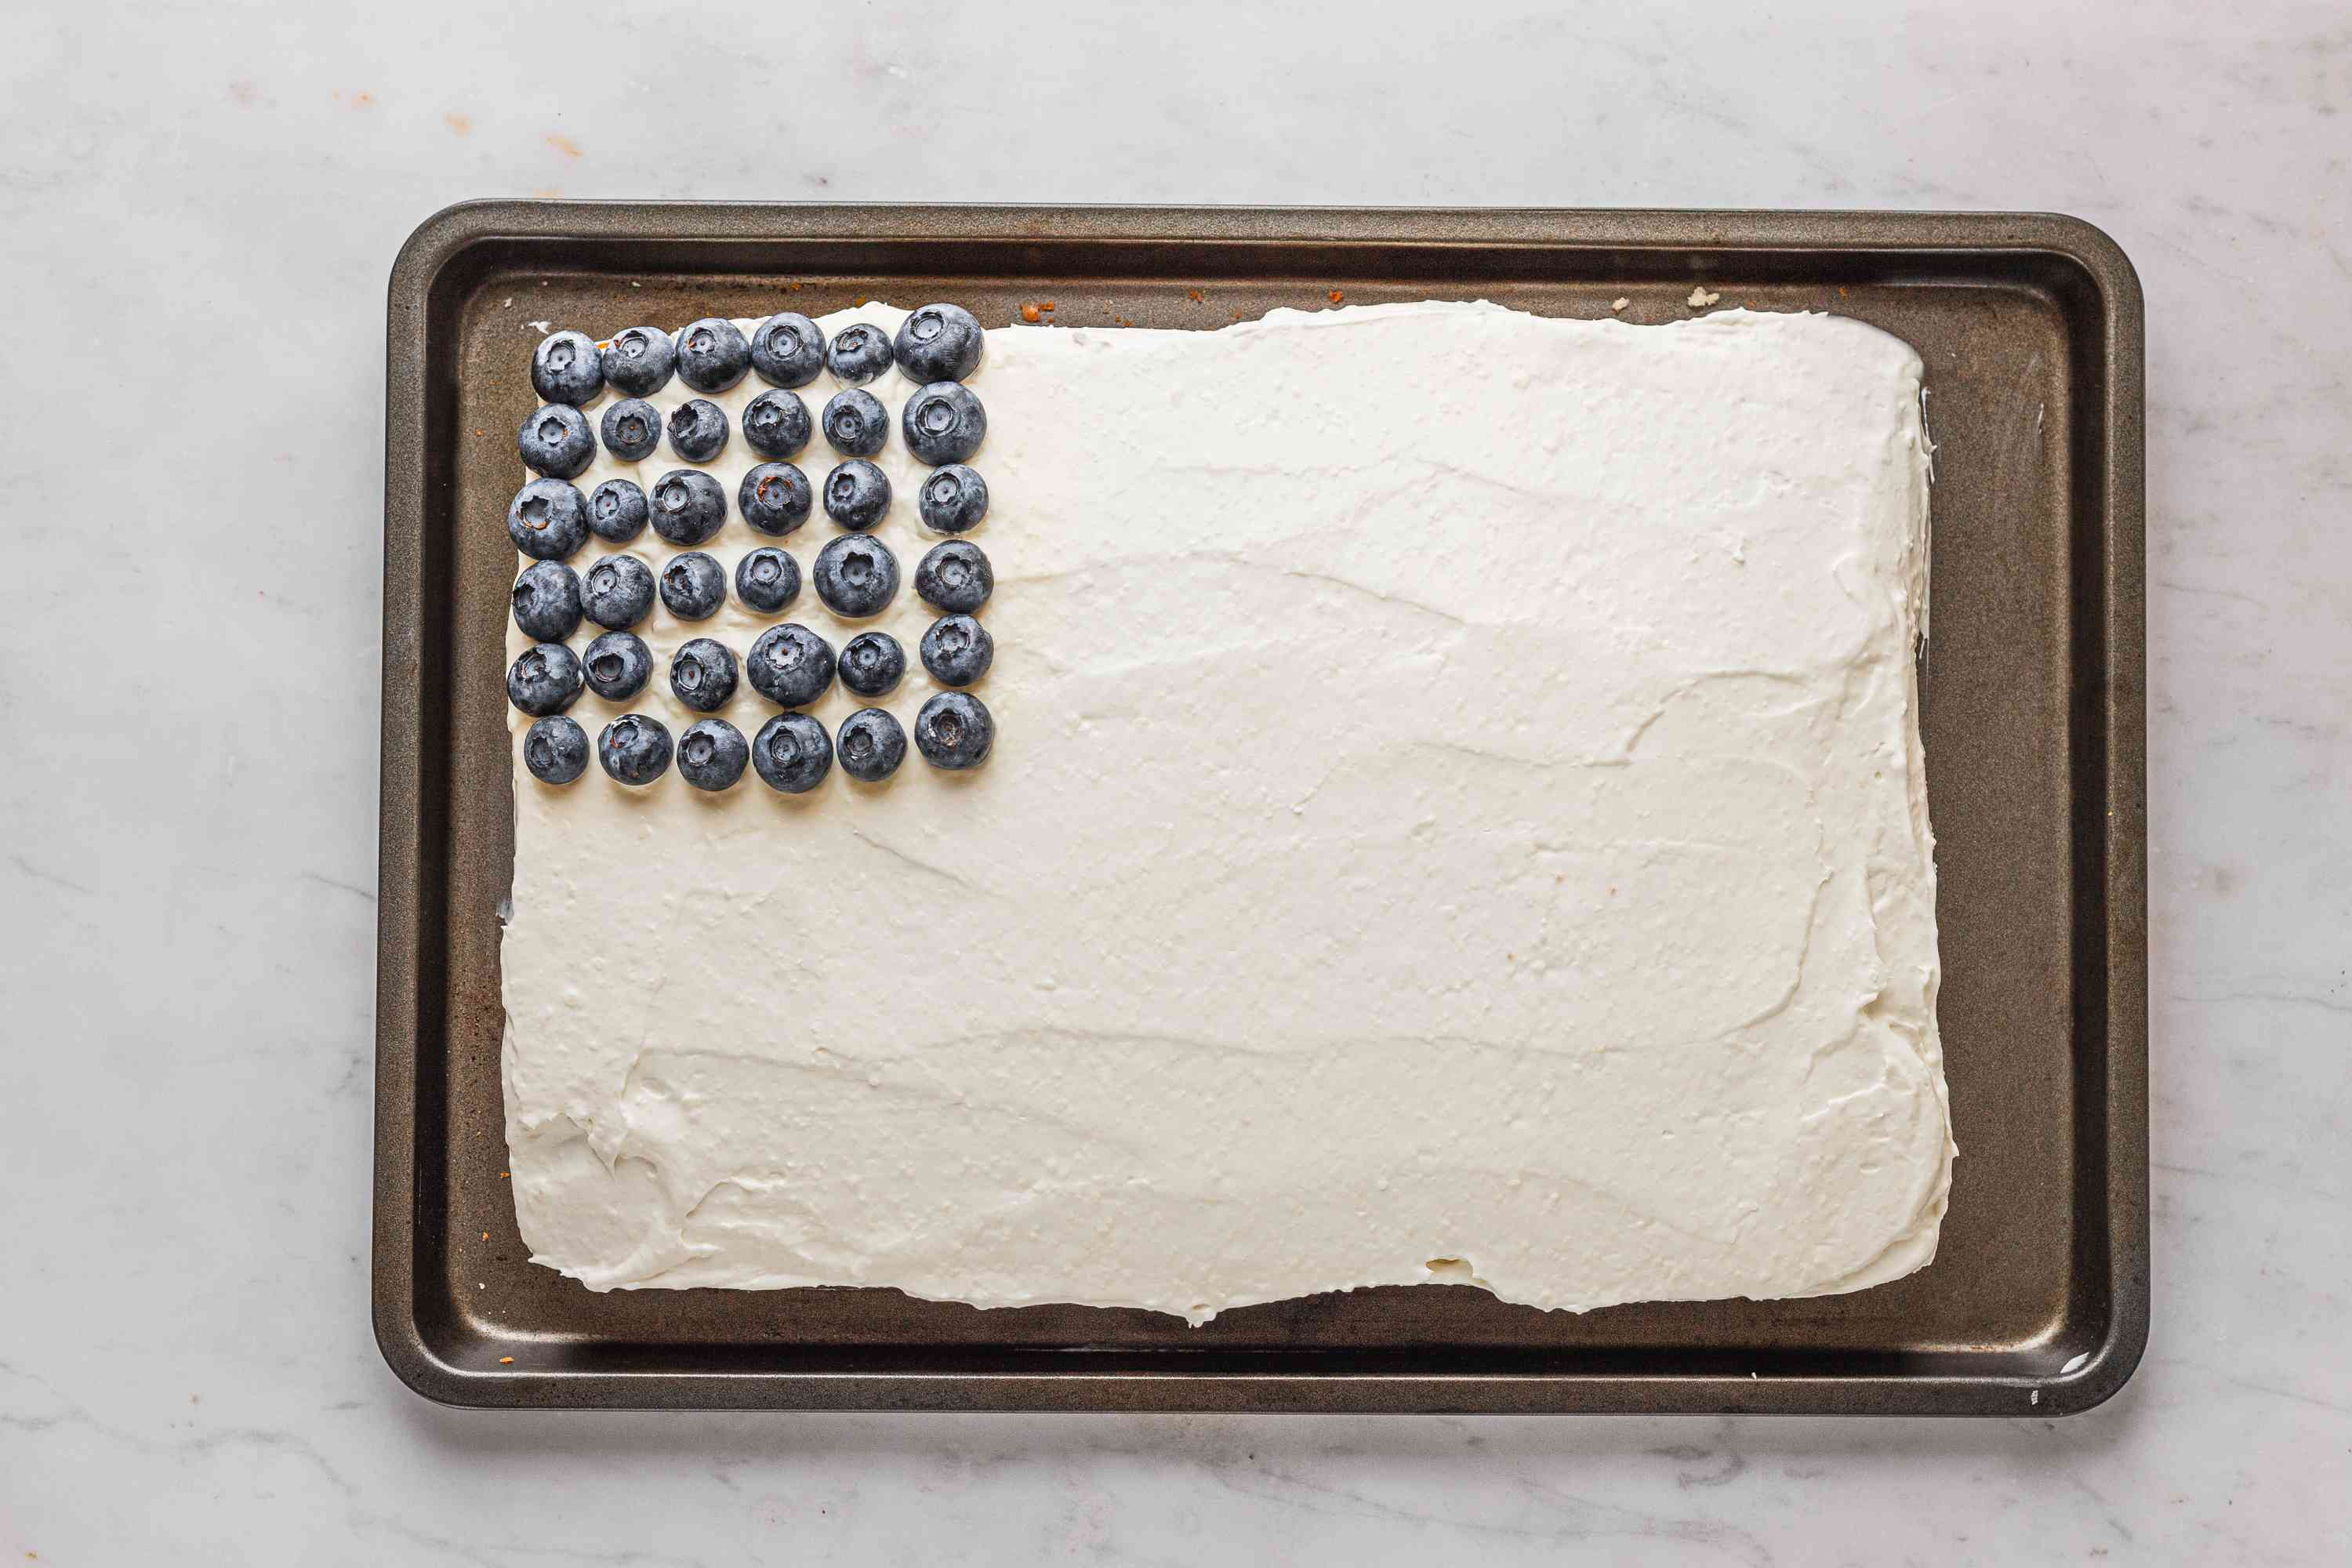 Blueberries on a cake